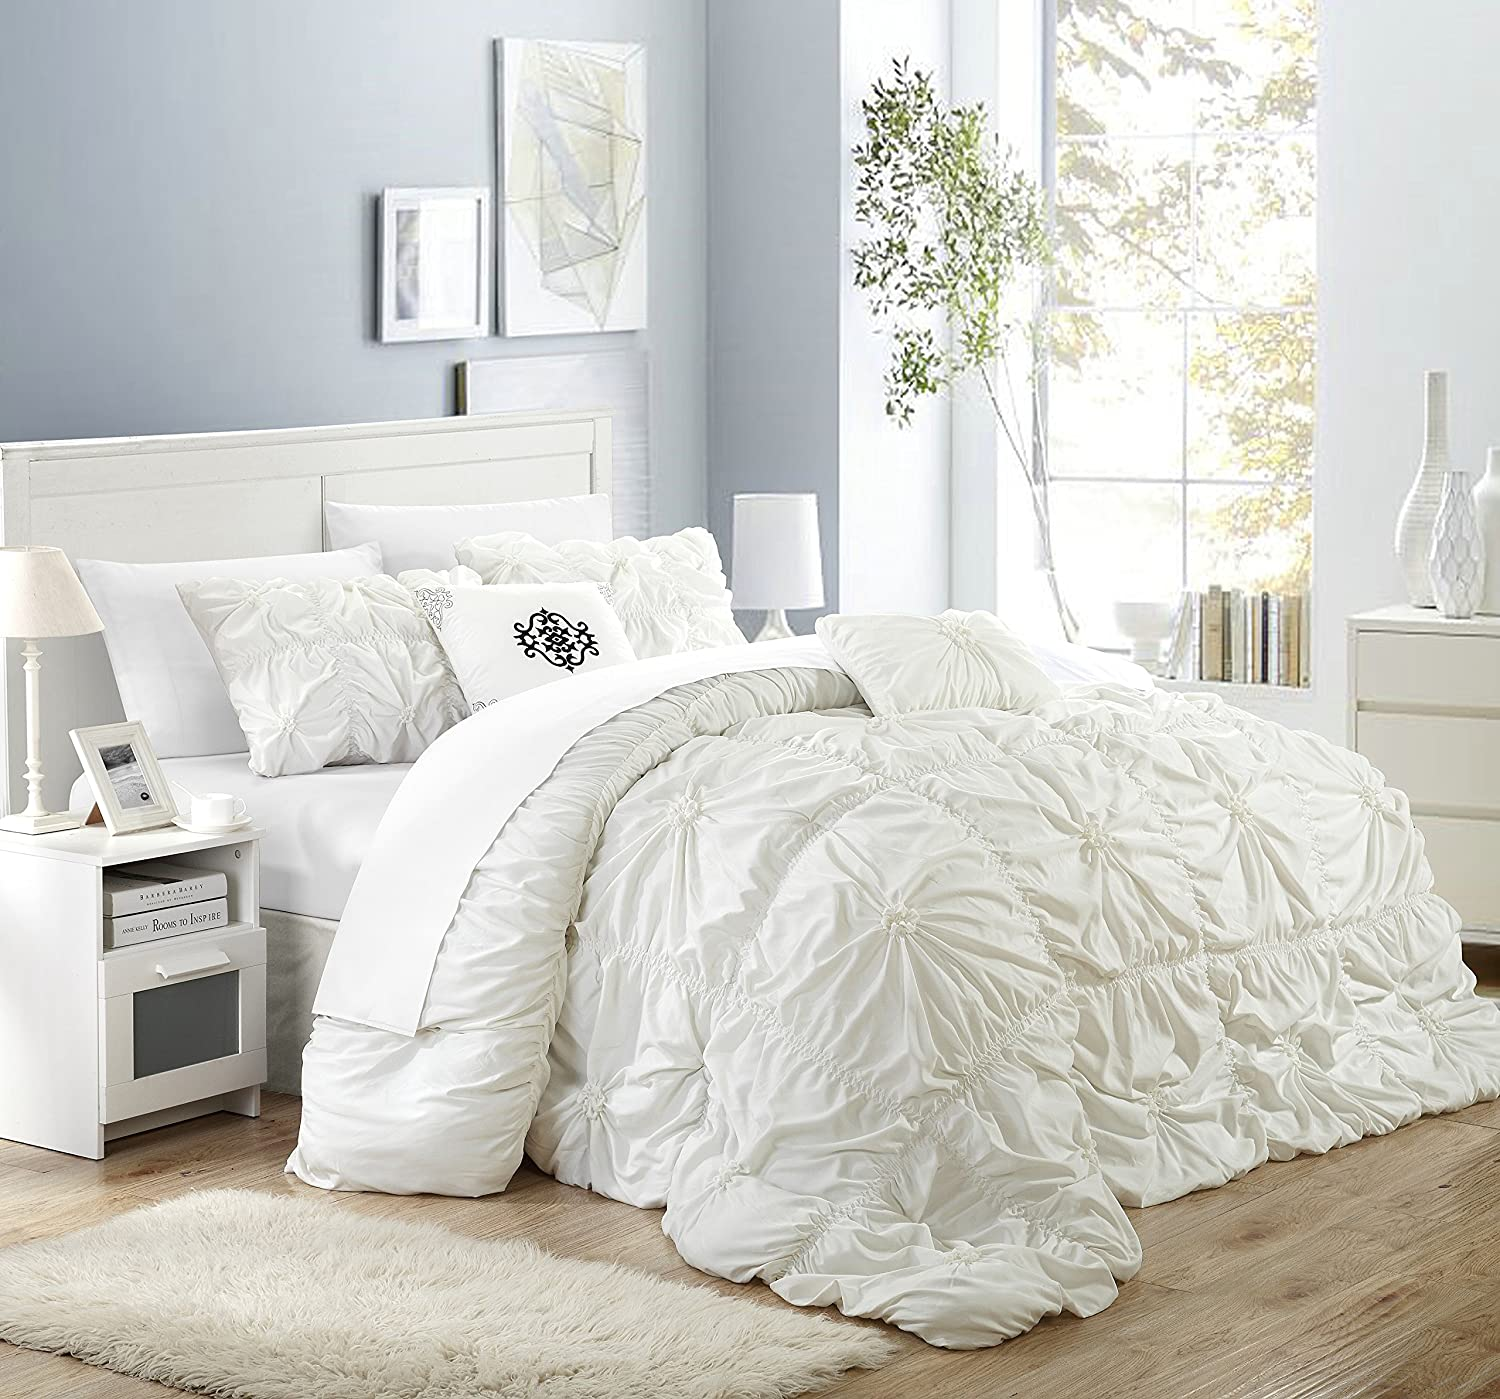 sets better and comforter classic set bedding homes ip white com piece walmart textured gardens